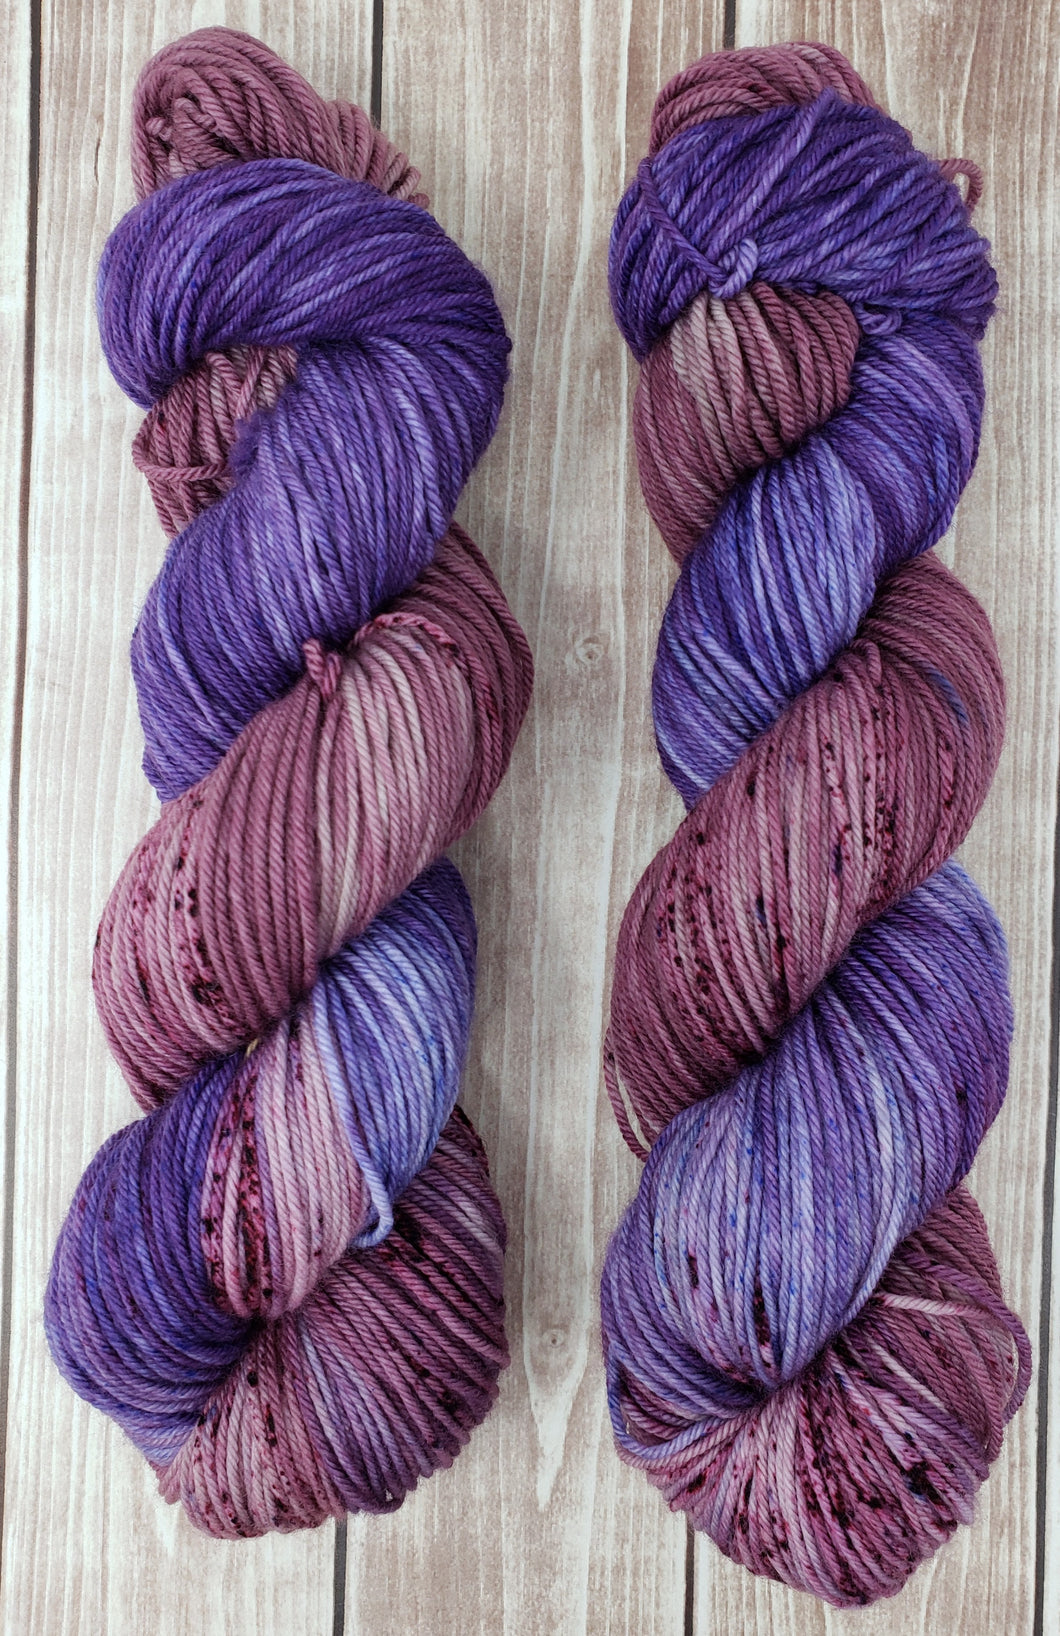 Antique Romance - Sock/Fingering  - DK Weight - Hand Dyed Yarn